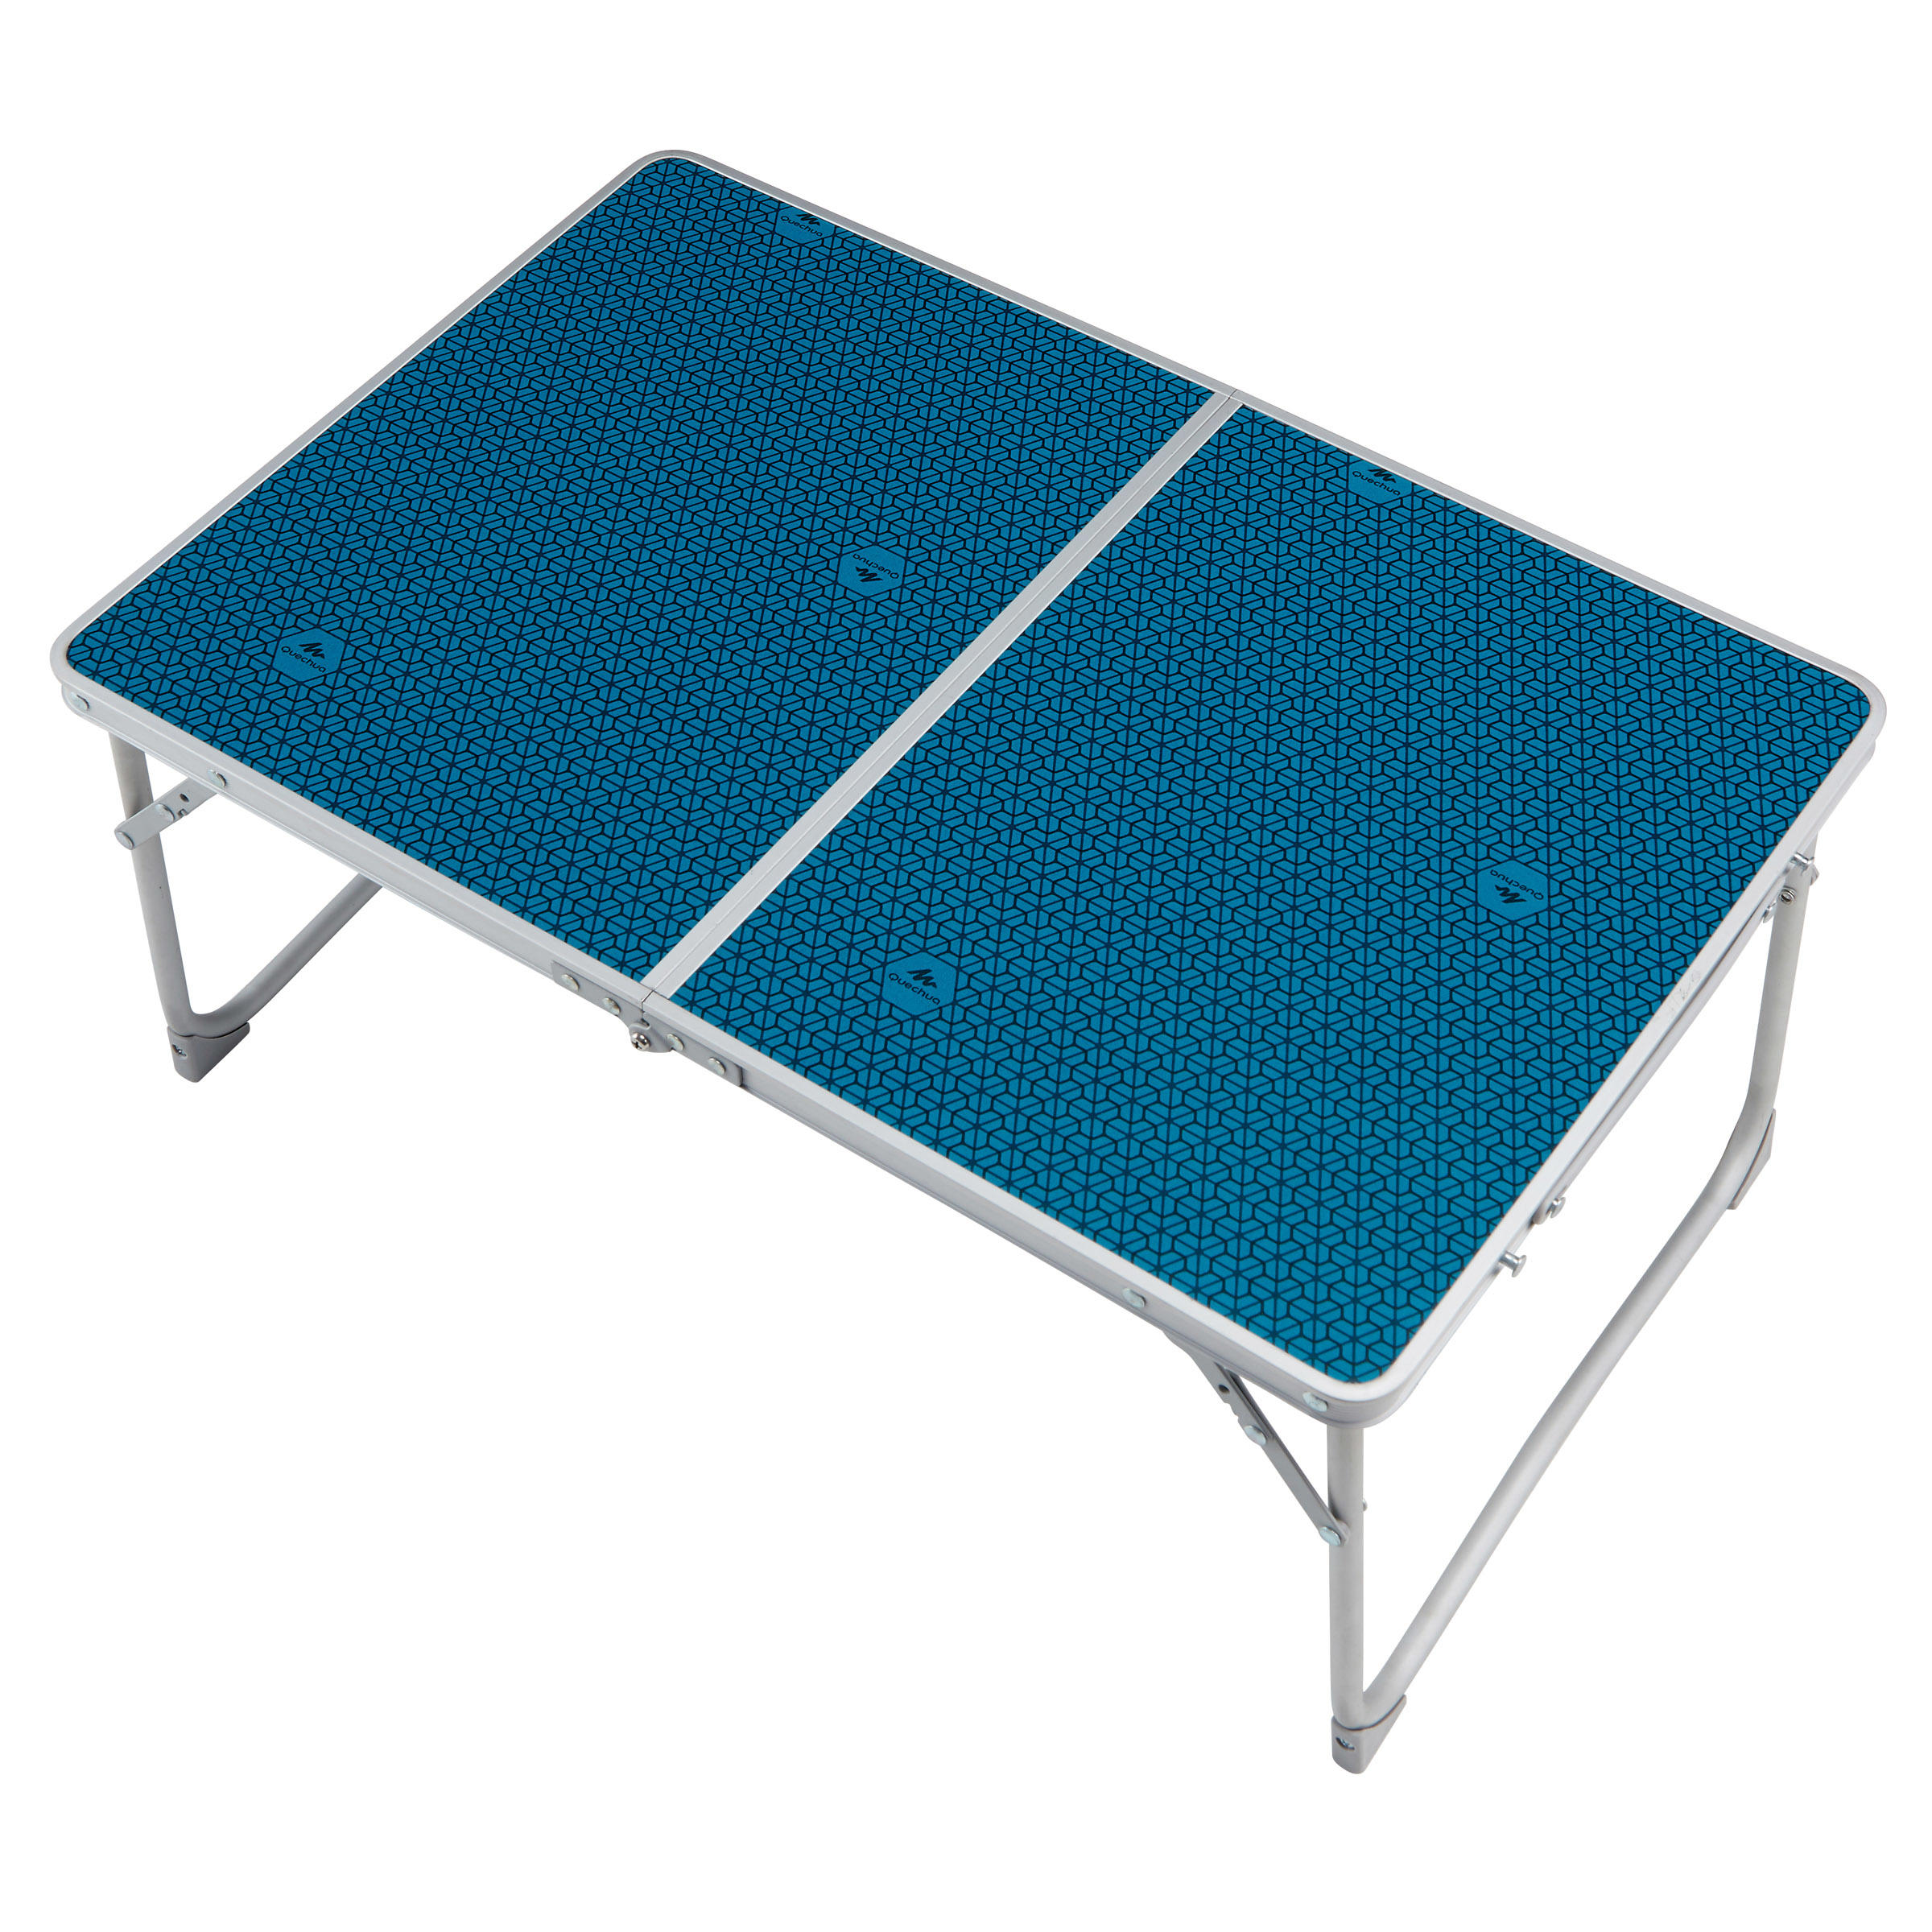 Camping coffee table